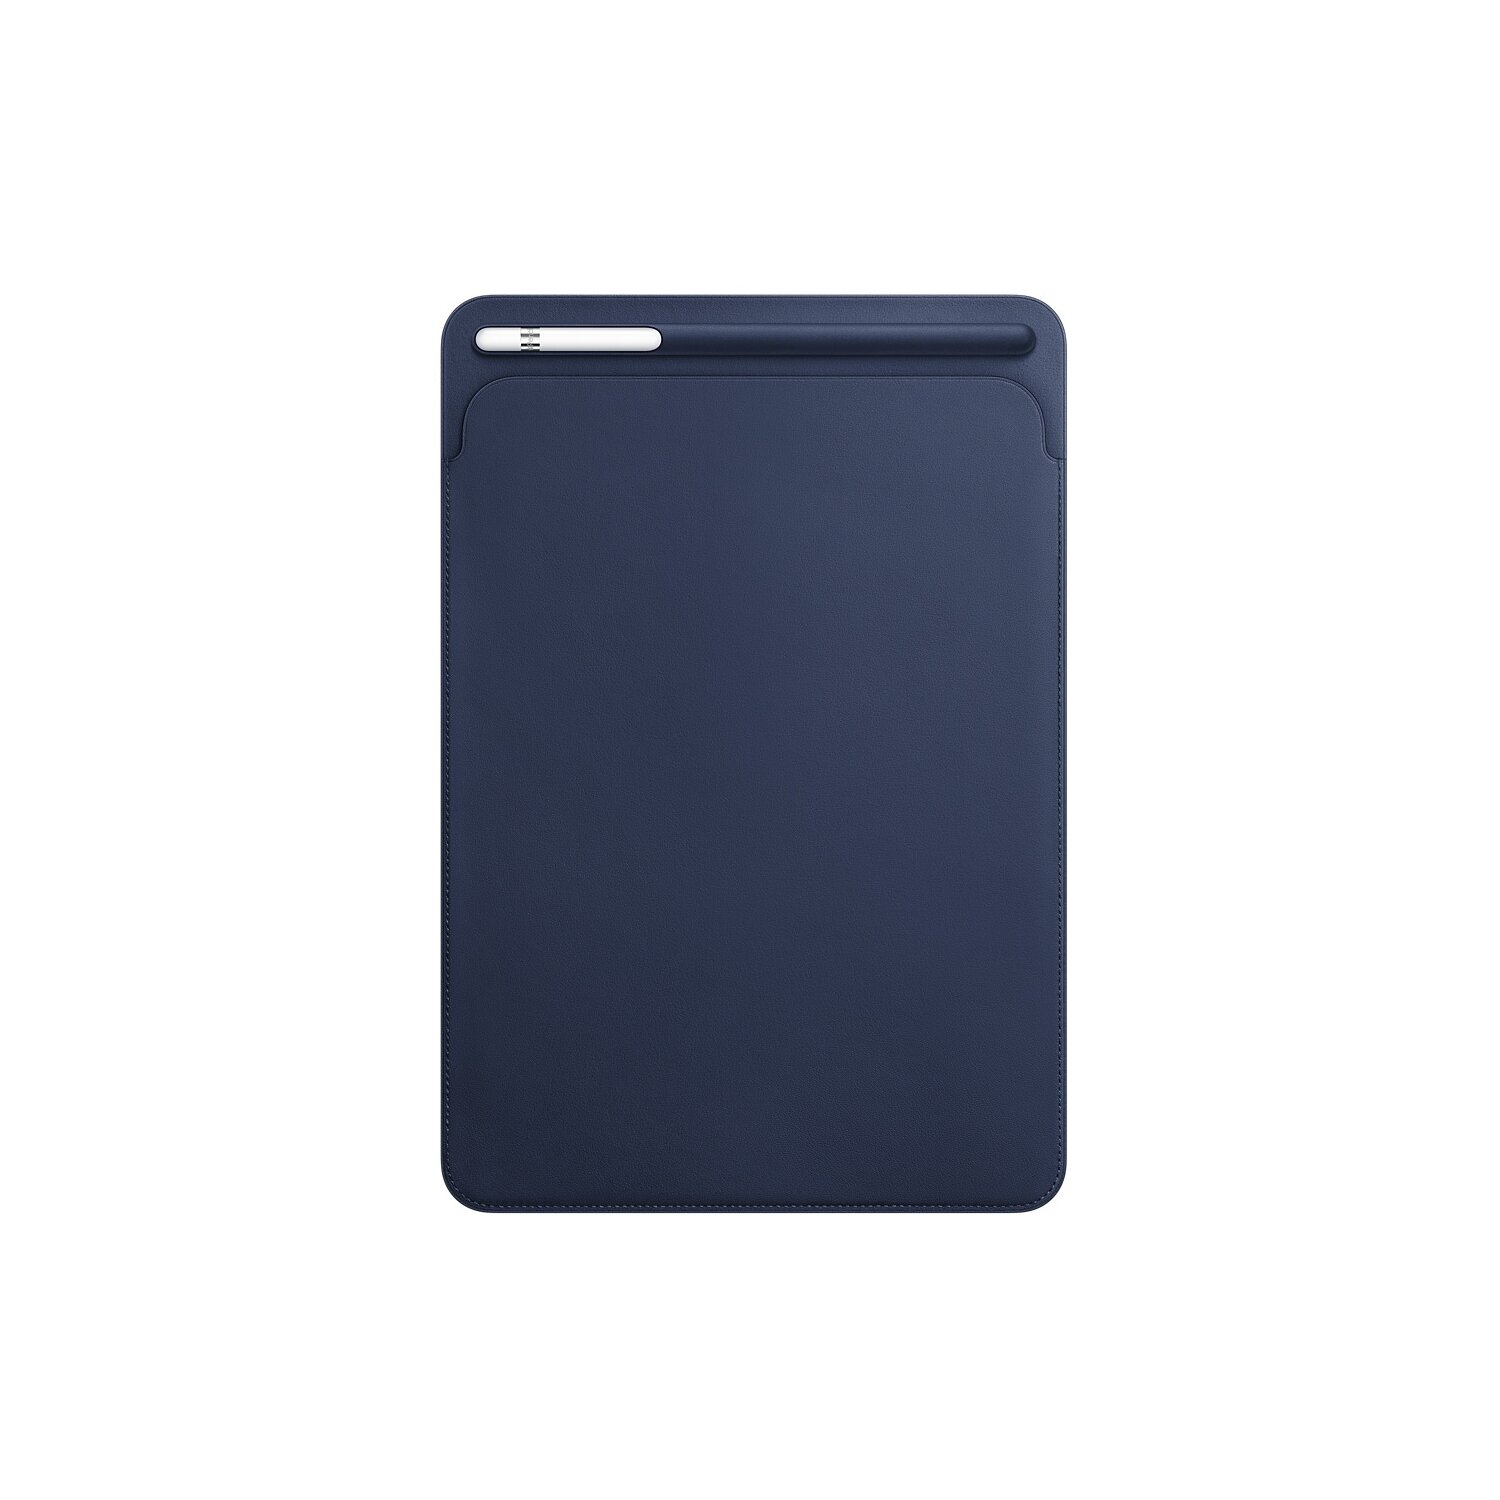 Etui APPLE Leather Sleeve do Apple iPad Pro 10,5 cala Nocny Błękit MPU22ZM/A